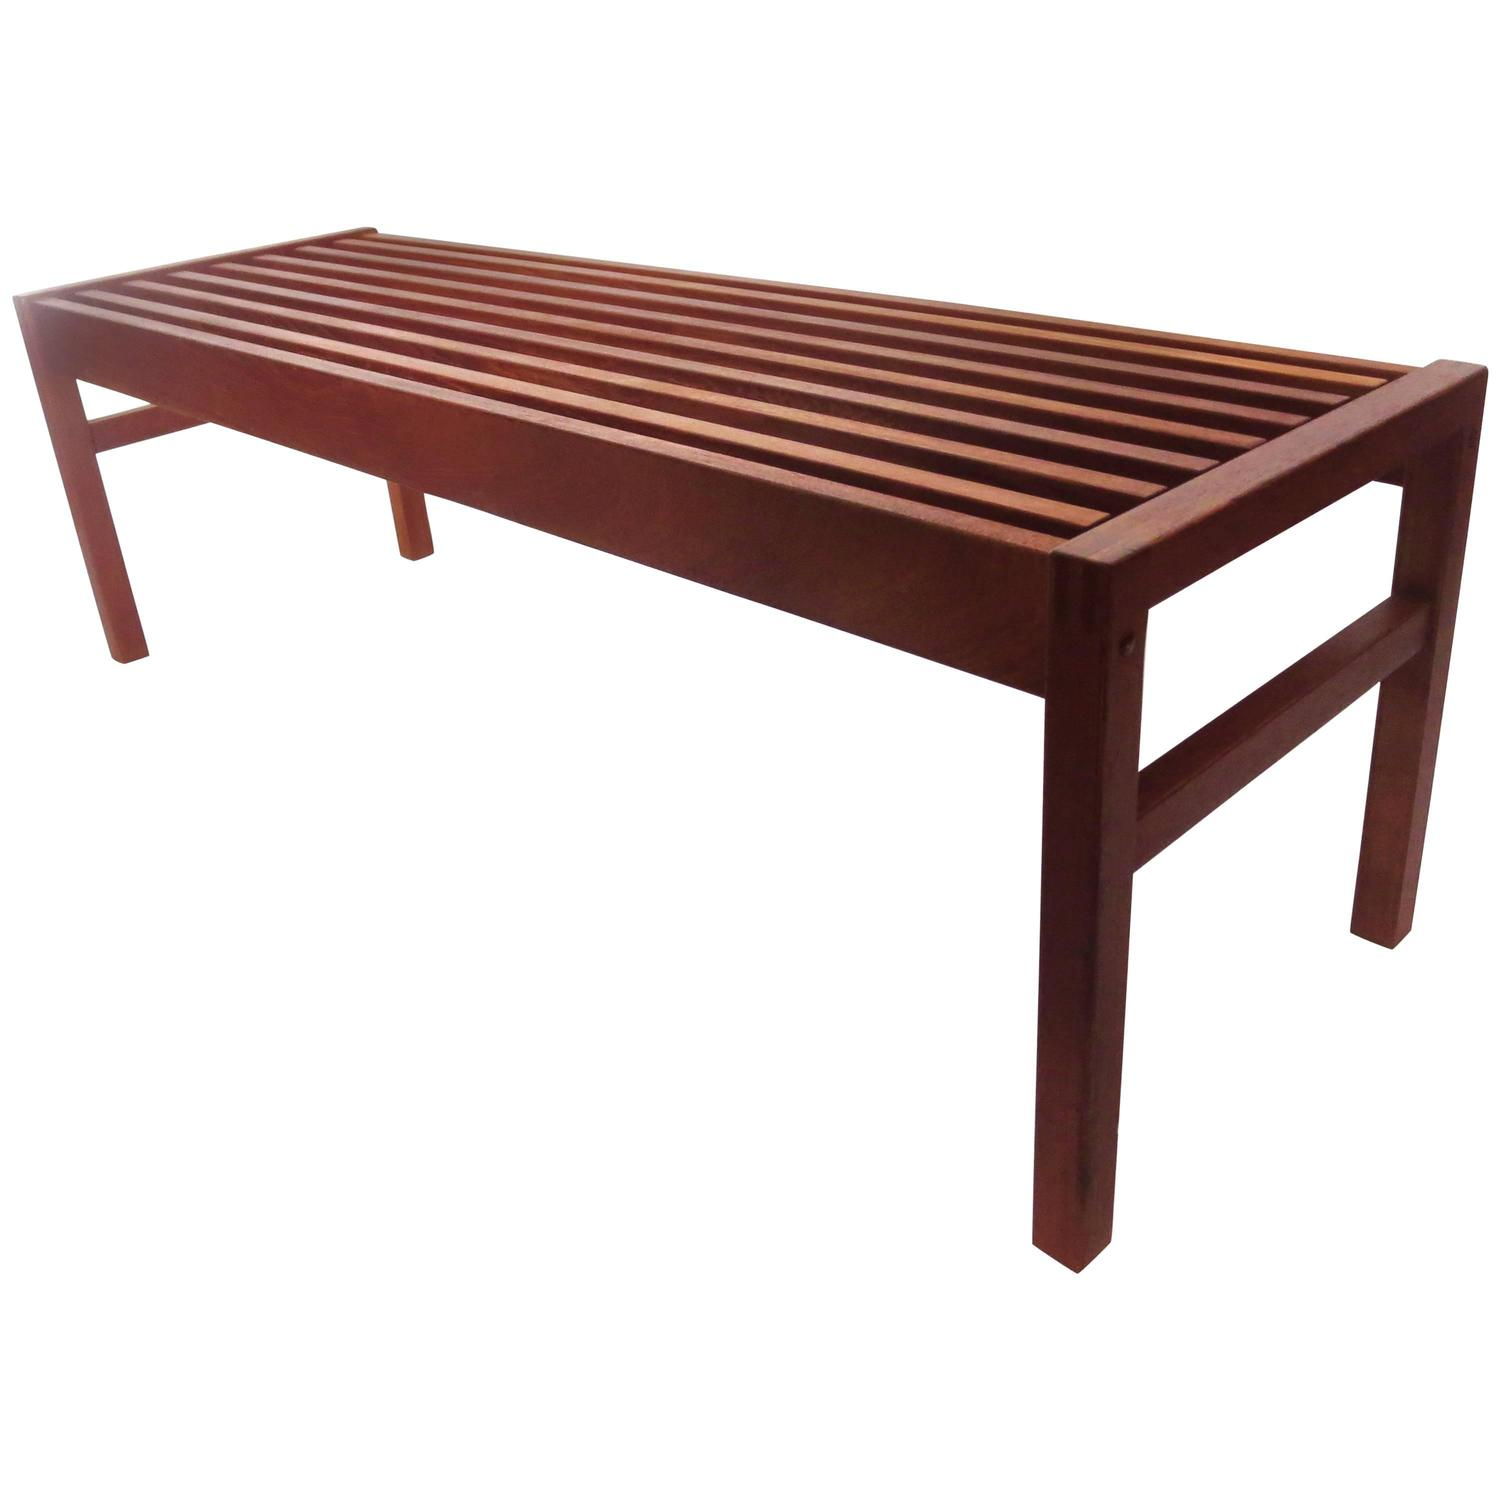 1950s solid teak danish modern bench coffee table at 1stdibs Solid teak coffee table